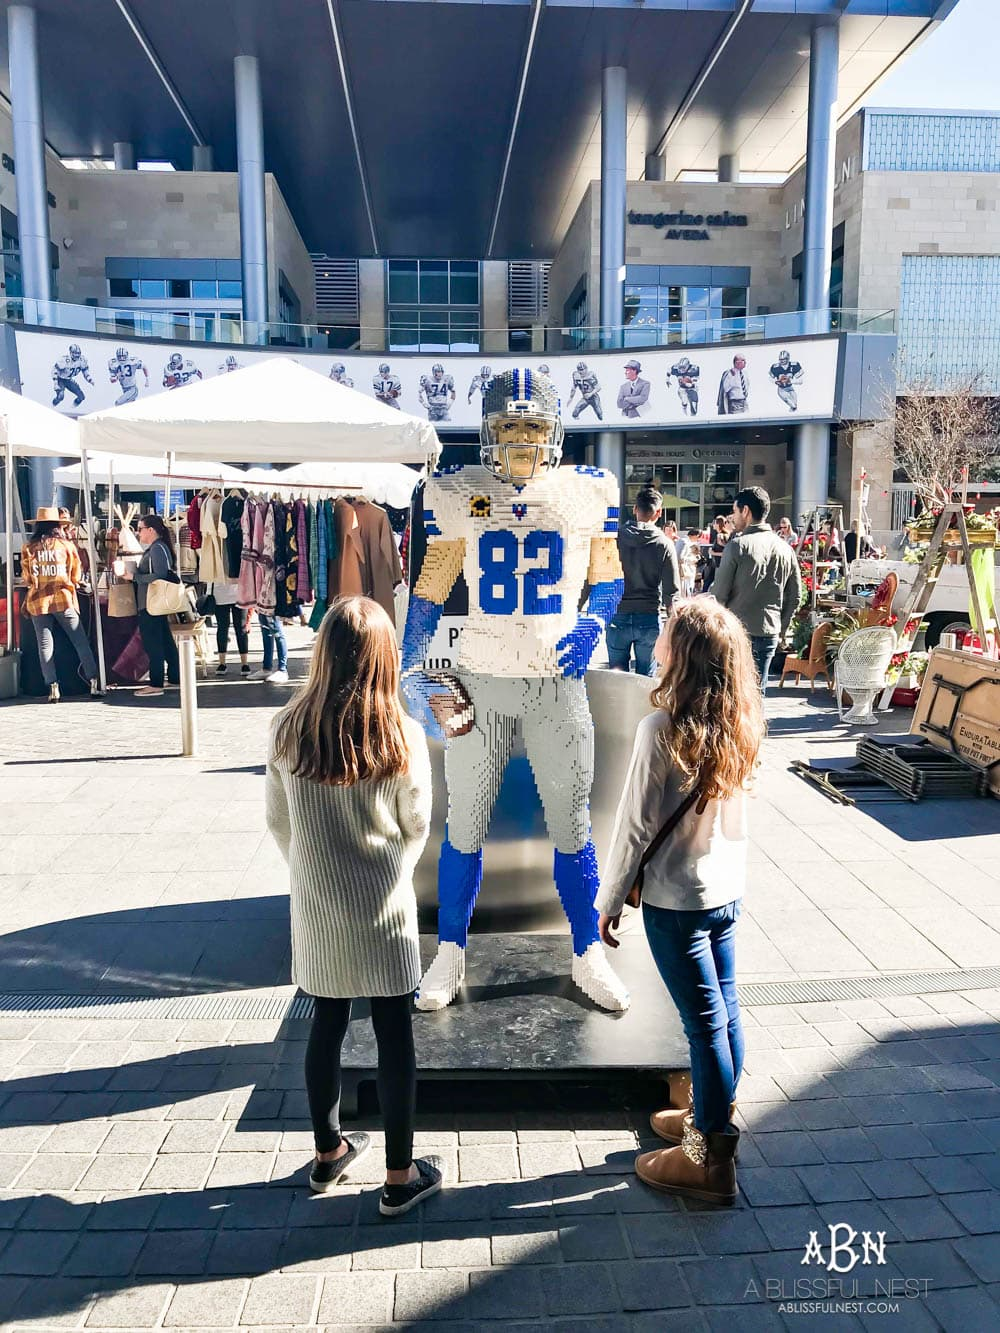 The Star District as it's the perfect place to shop, dine, and bring the family to experience the Dallas Cowboys themed campus. Offering more than thirty restaurants, shopping and specialty services, The Star District is a place for the whole family to enjoy. #ad #TheStar #MarketAtTheStar